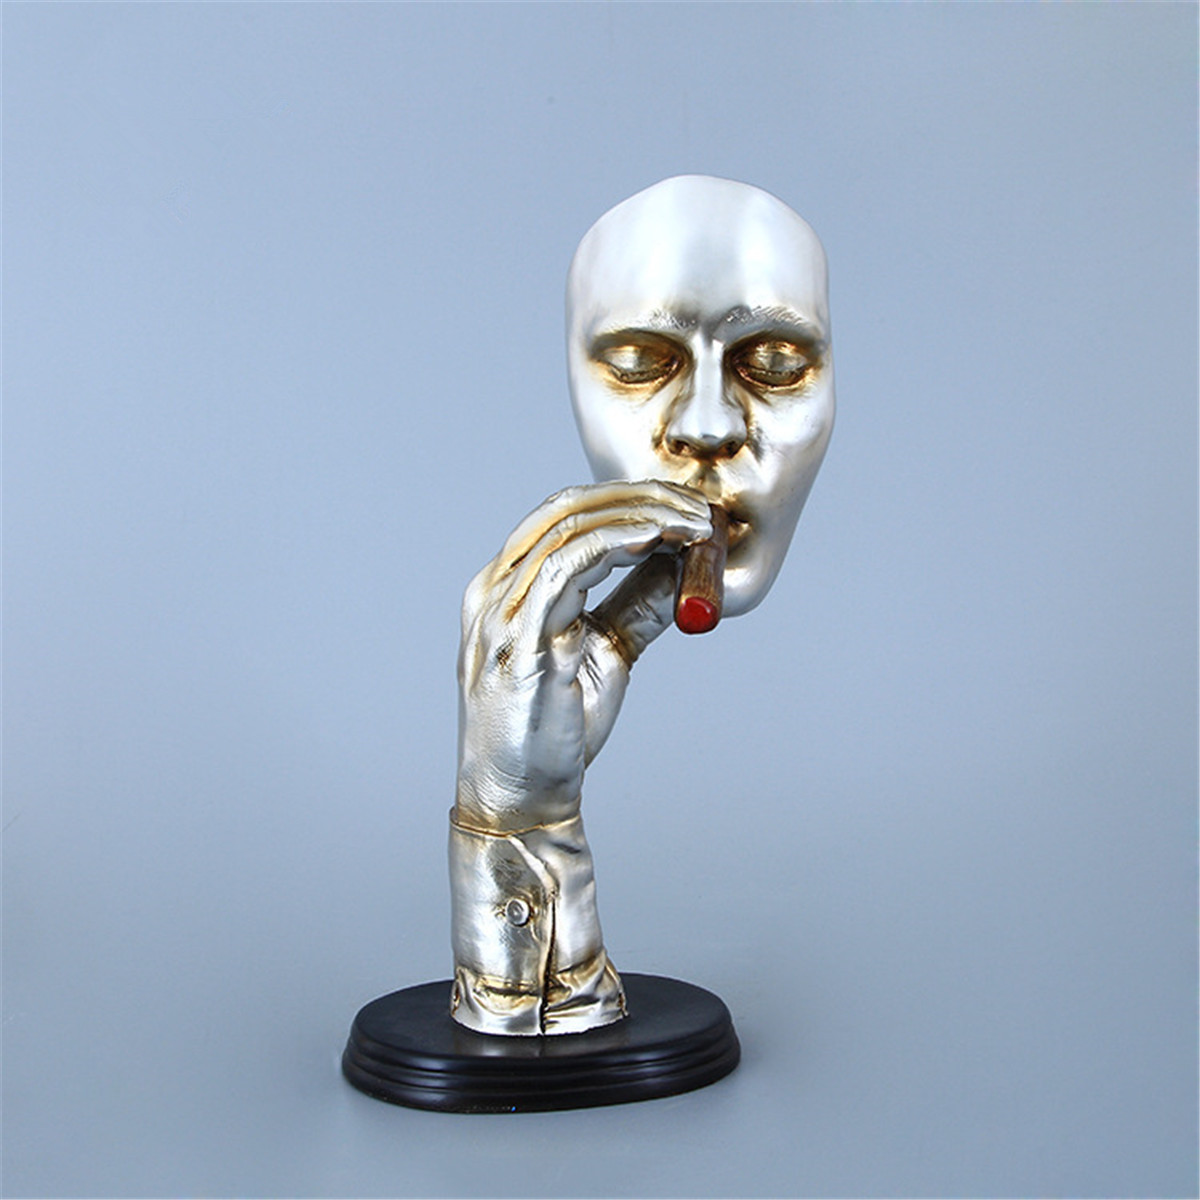 Retro Abstract Statues Sculpture Man Smoking Cigar Human Face Statue Ornament Character Resin Figurine Artwork Home DecorationsRetro Abstract Statues Sculpture Man Smoking Cigar Human Face Statue Ornament Character Resin Figurine Artwork Home Decorations